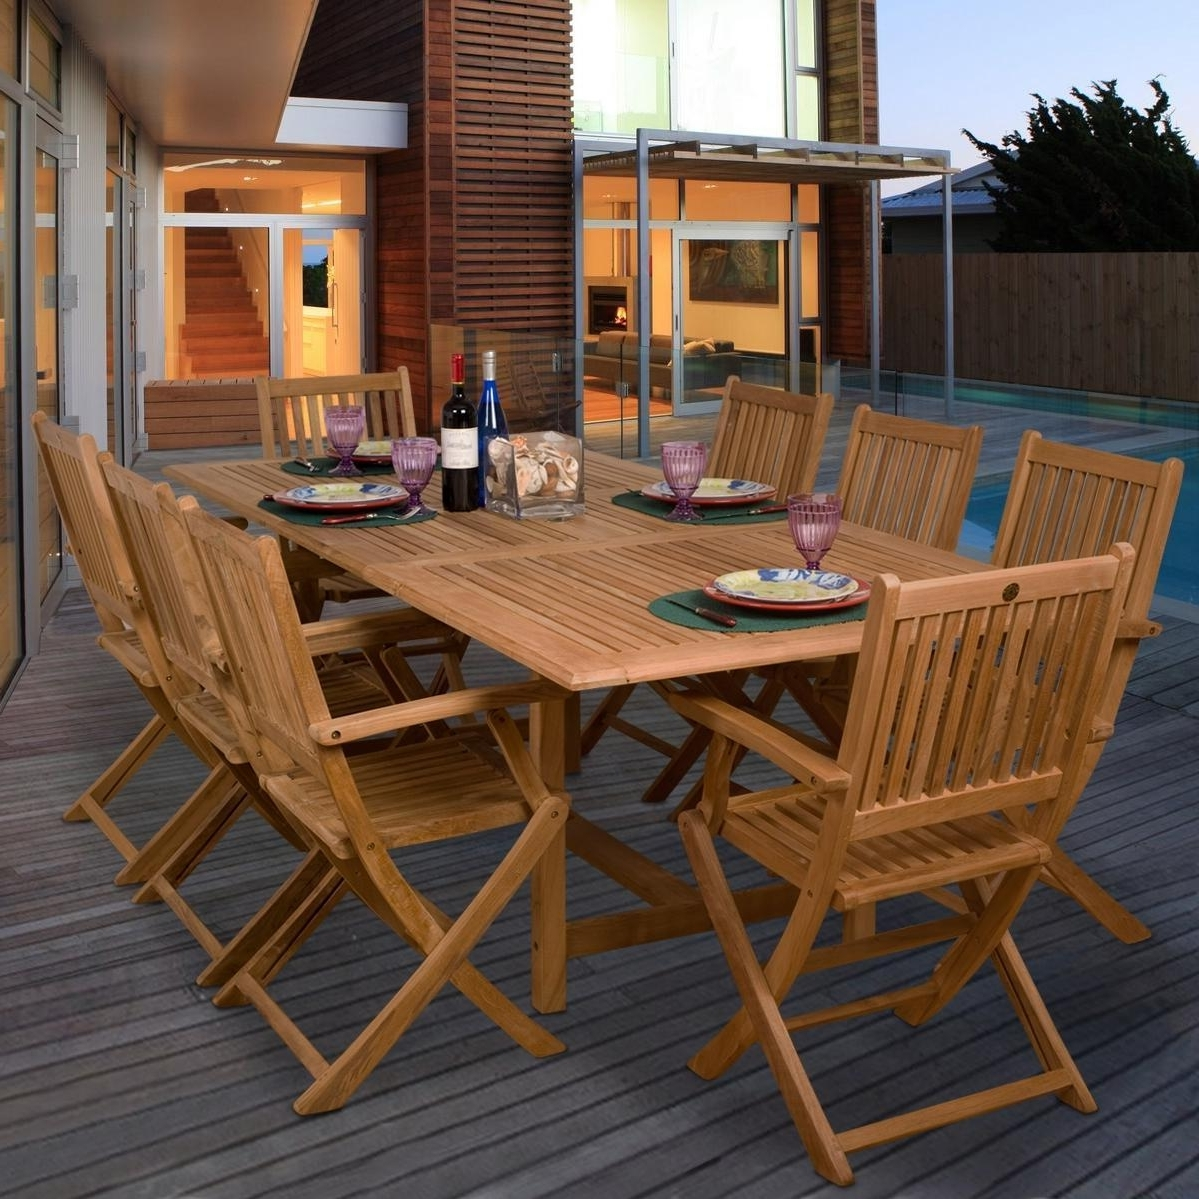 Teak Hamburg 9 Piece Teak Patio Dining Set With 67 X 39 Inch Pertaining To Famous Craftsman 9 Piece Extension Dining Sets (View 20 of 25)